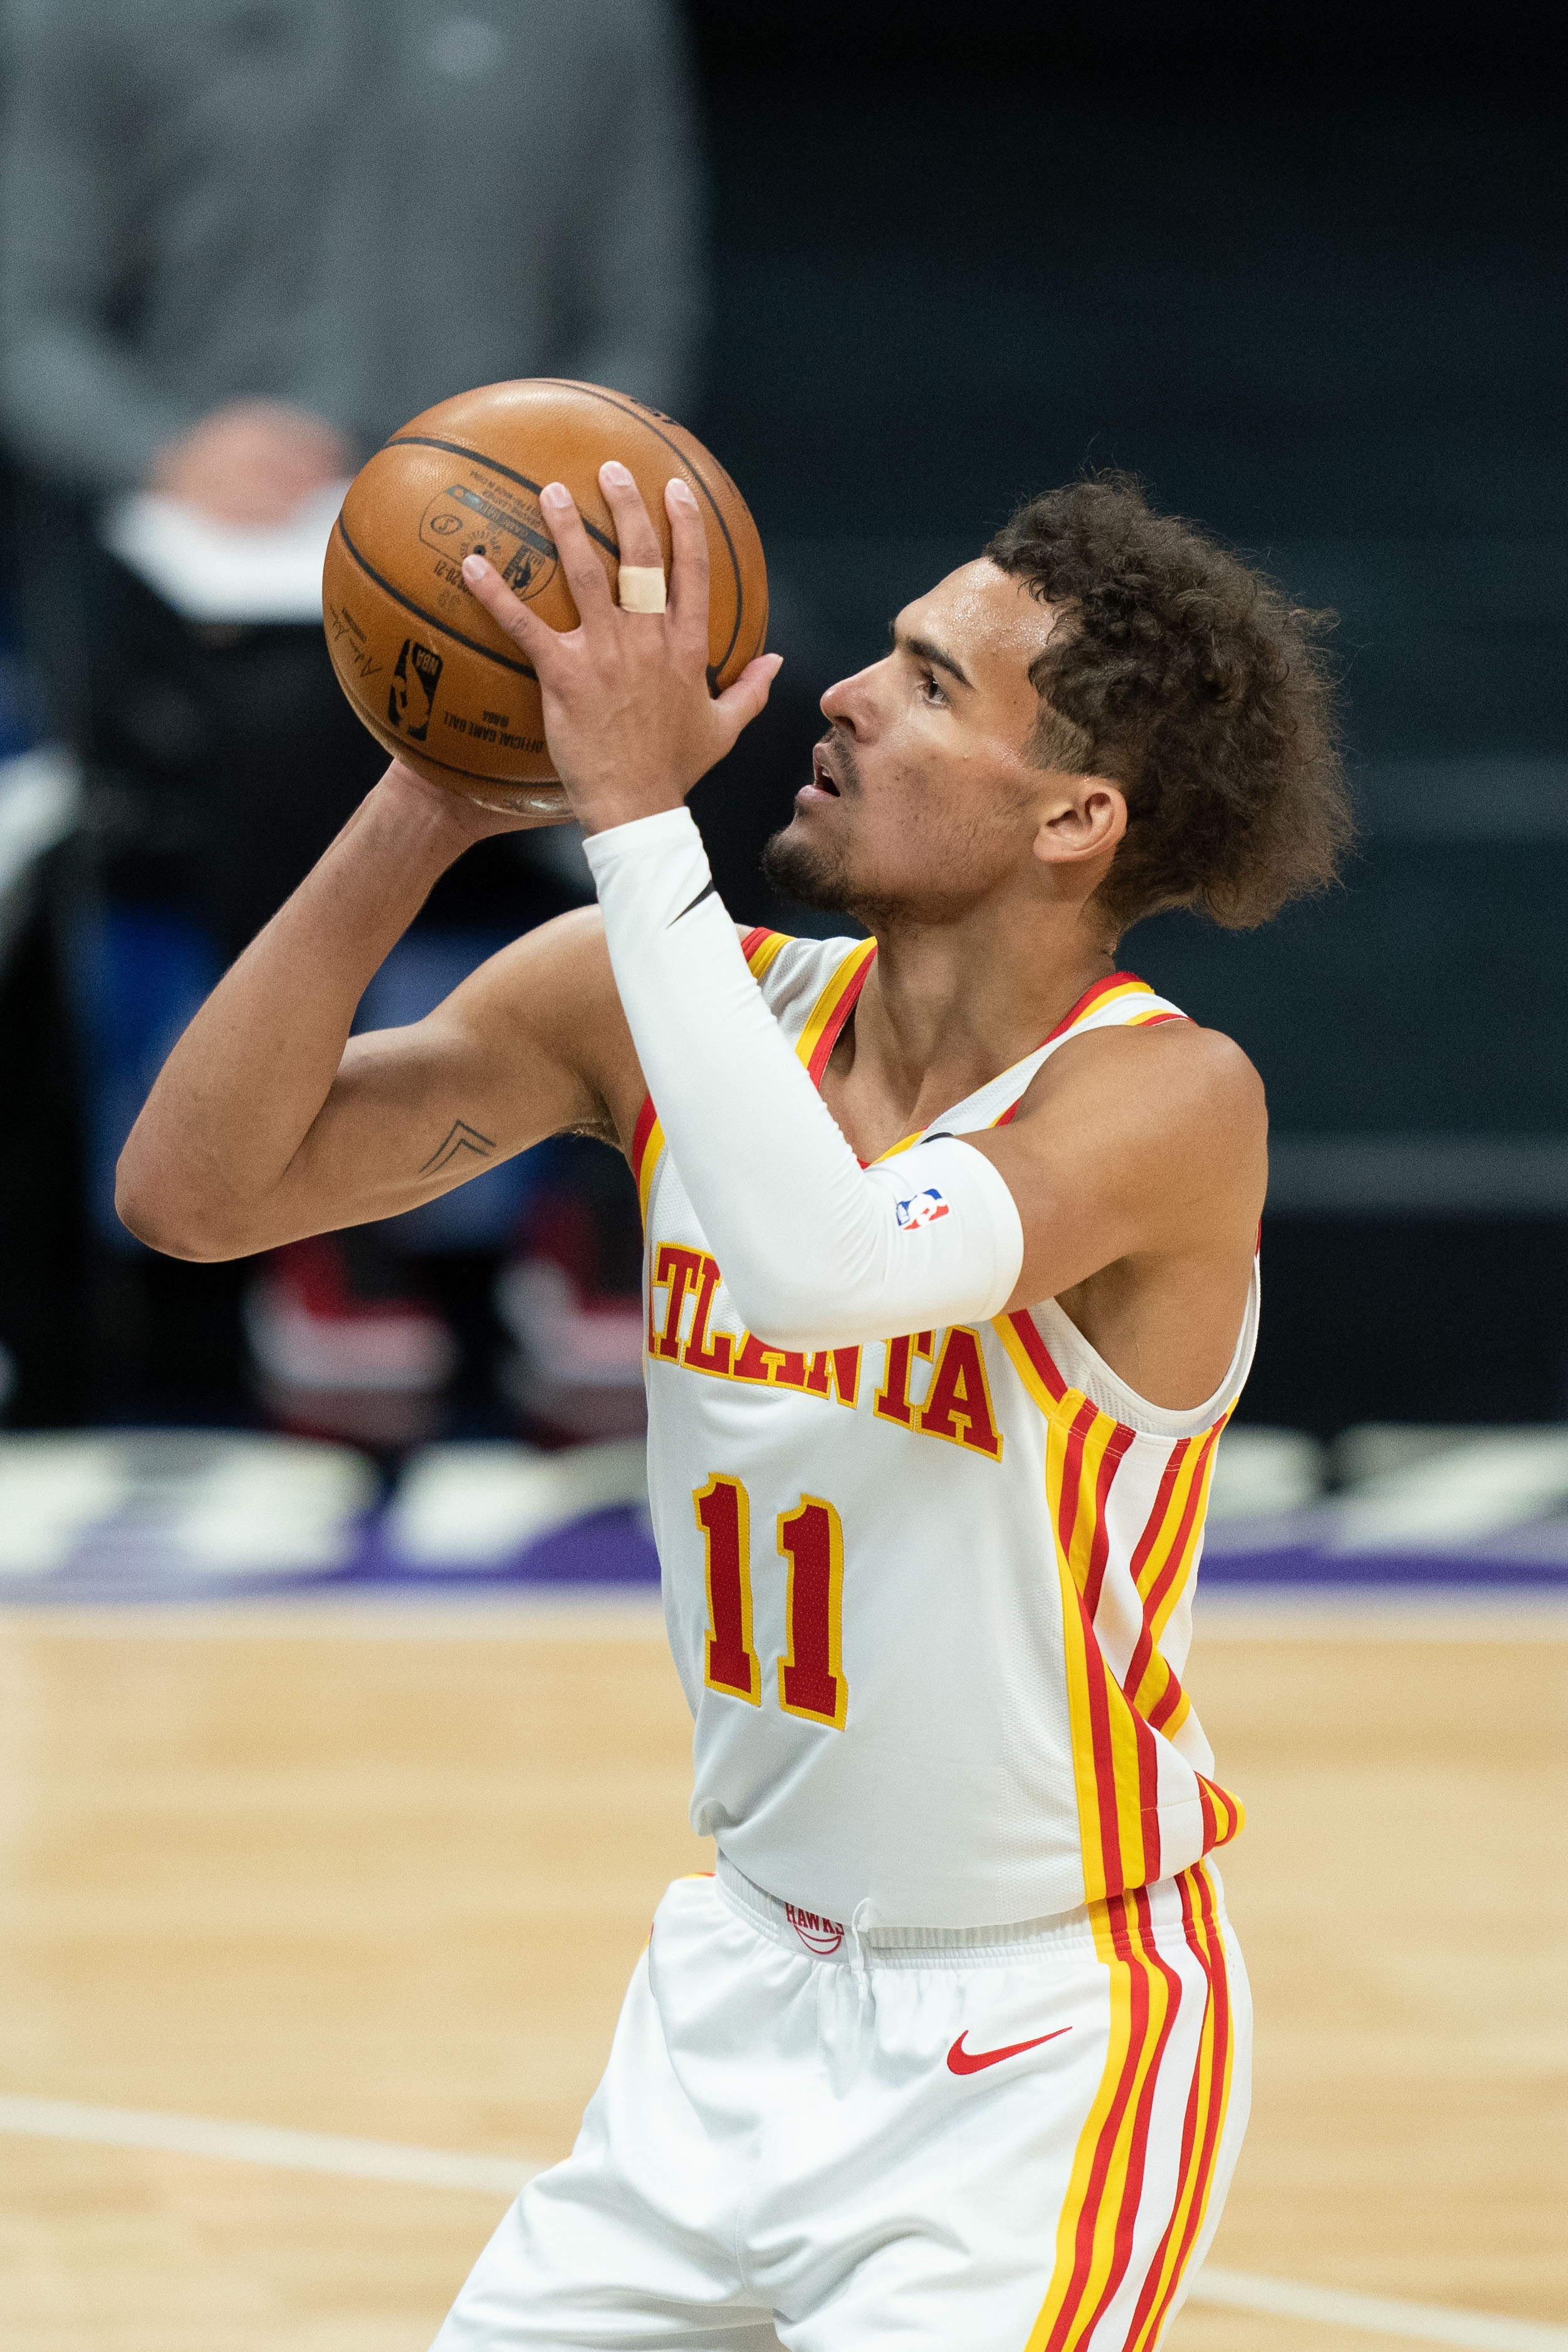 Atlanta Hawks guard Trae Young during the first quarter against the Sacramento Kings at Golden 1 Center.